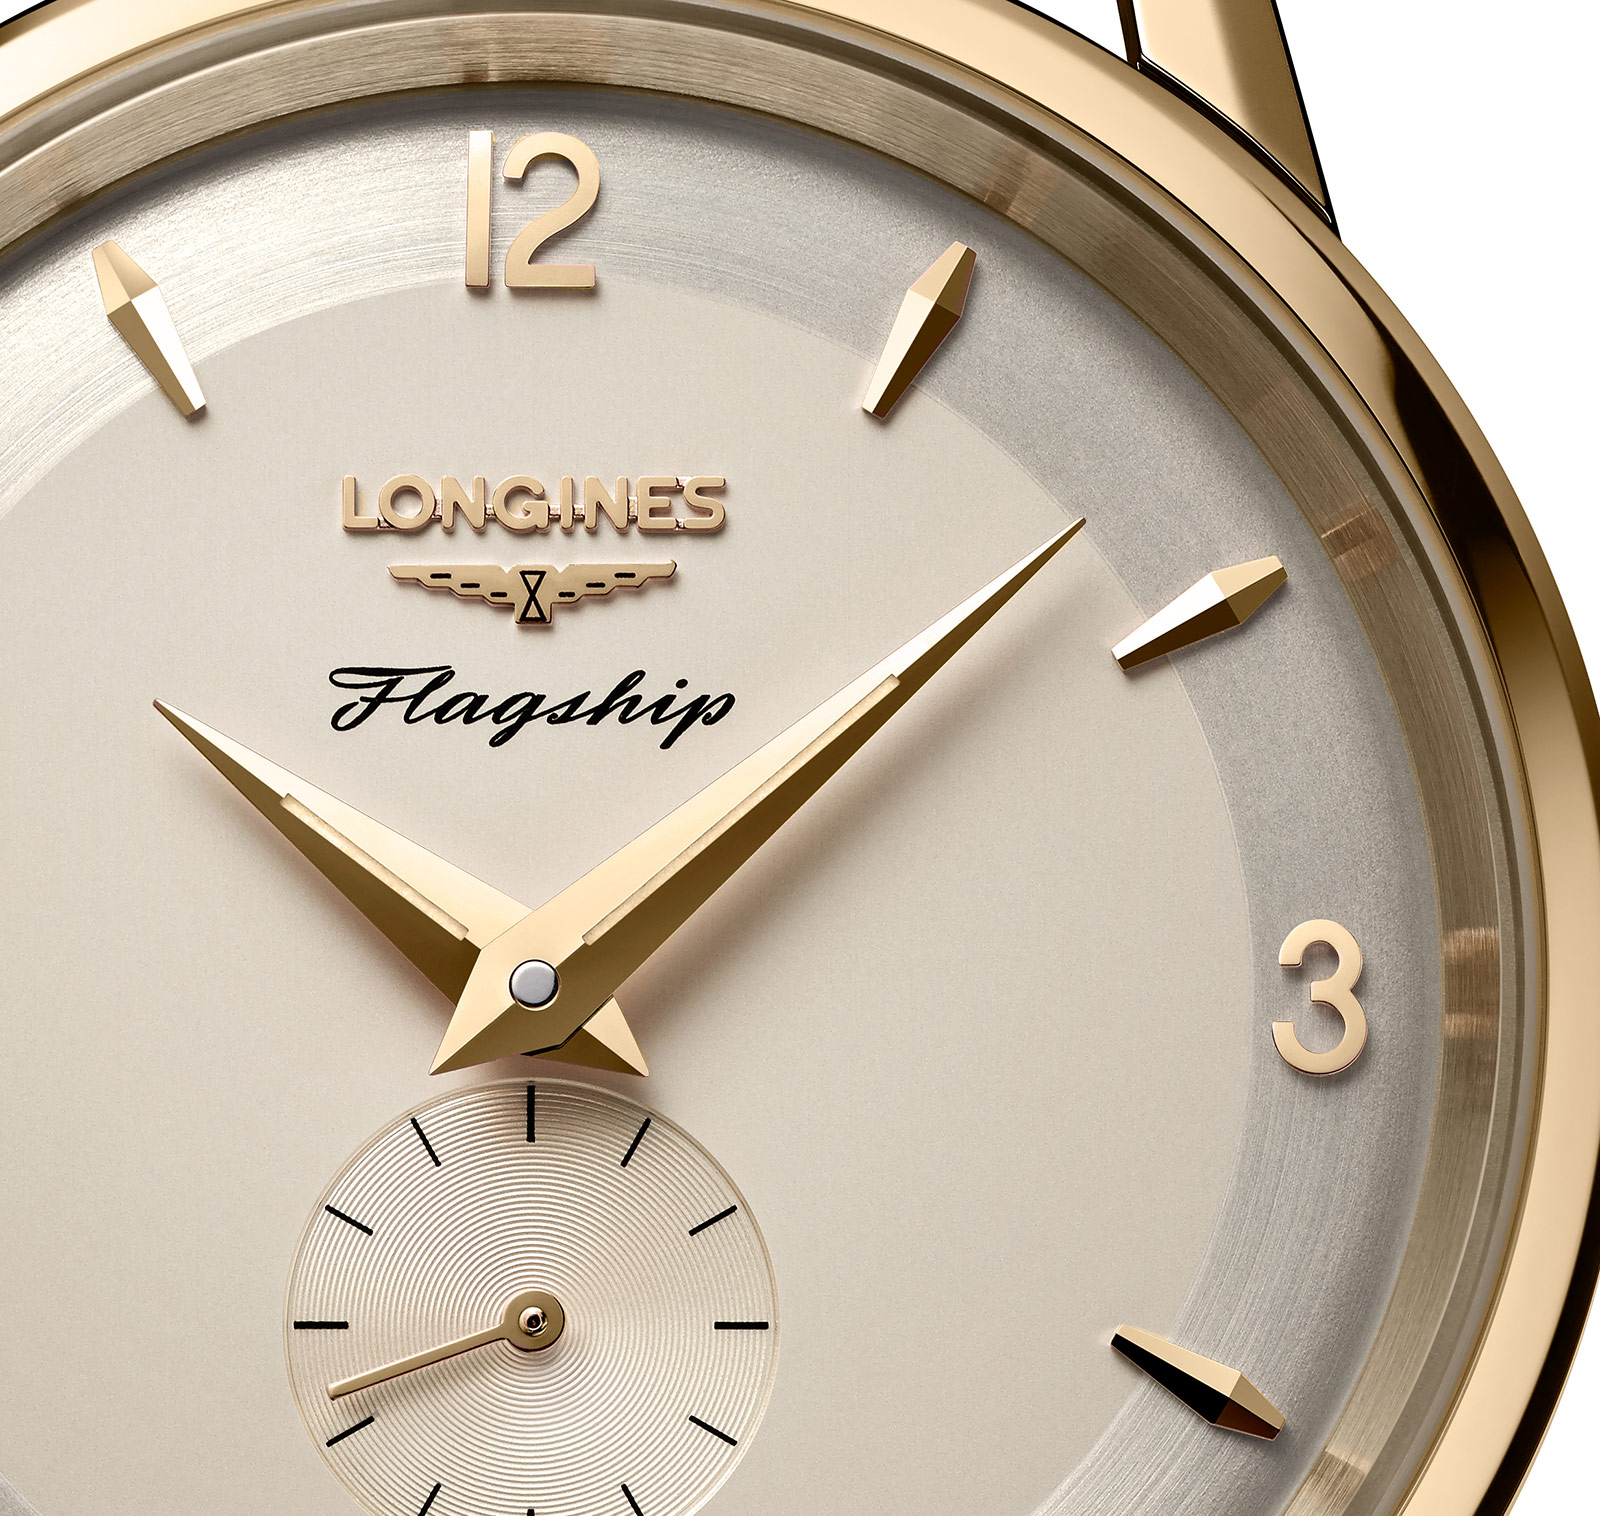 Longines Flagship Heritage 60th Anniversary yellow gold